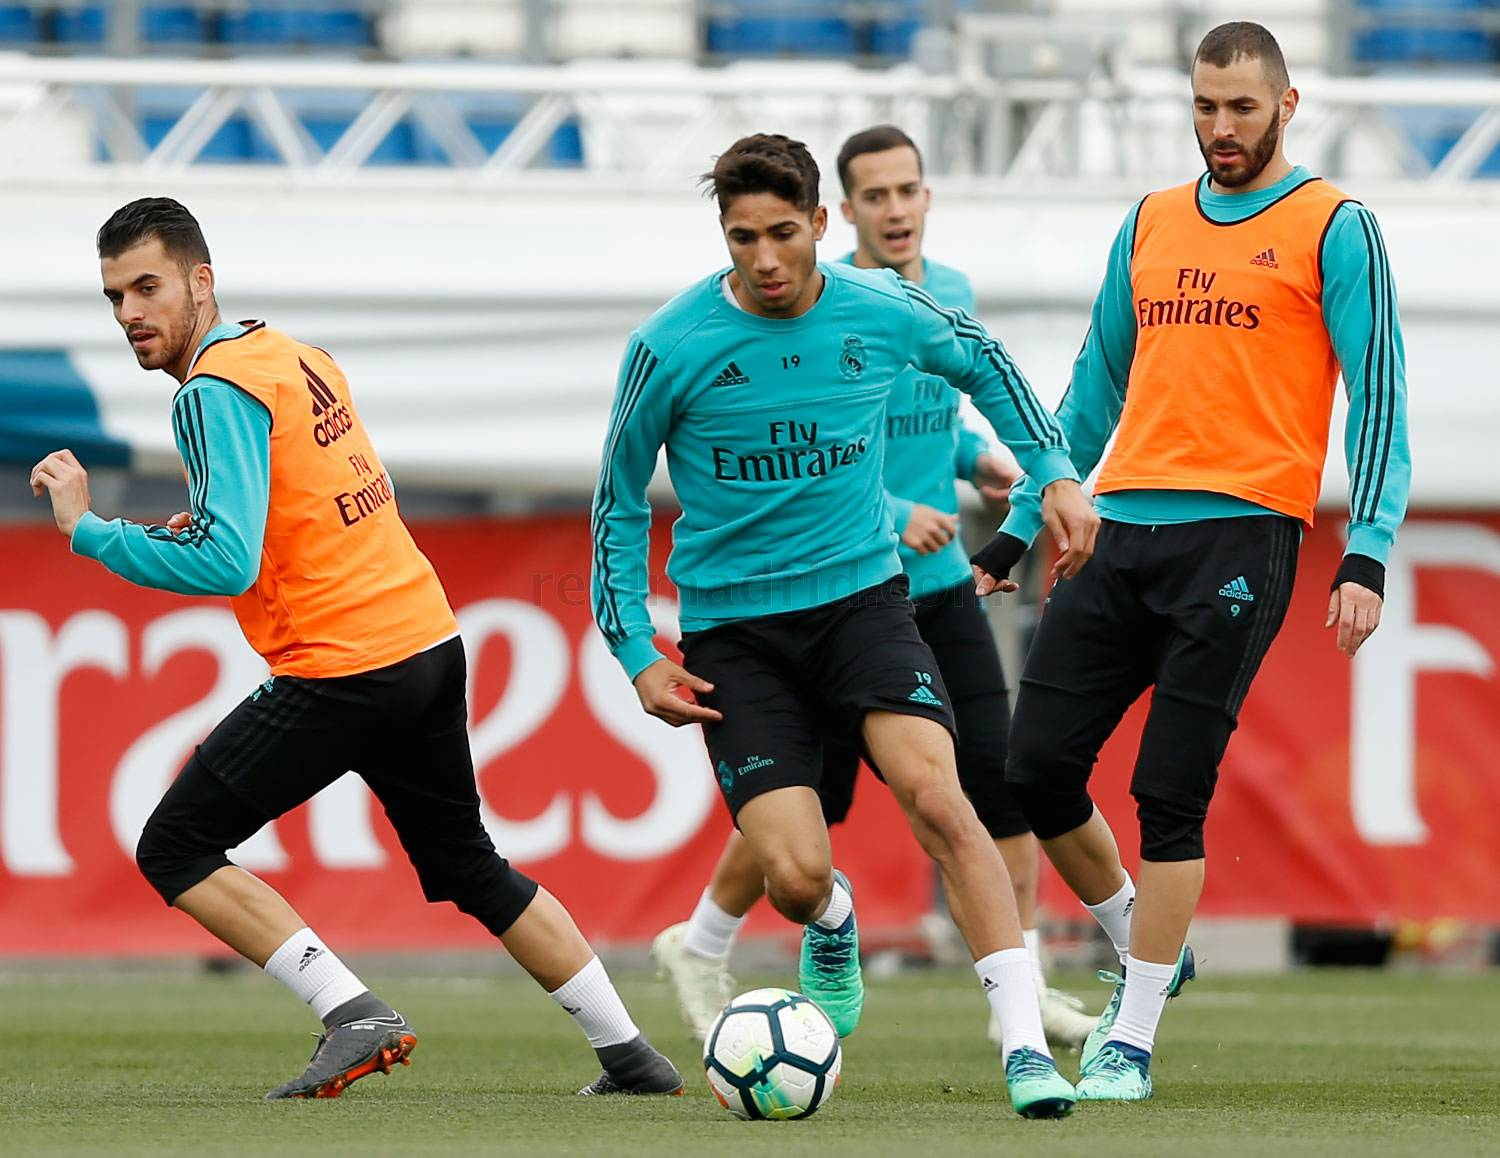 Real Madrid - Entrenamiento del Real Madrid - 06-04-2018